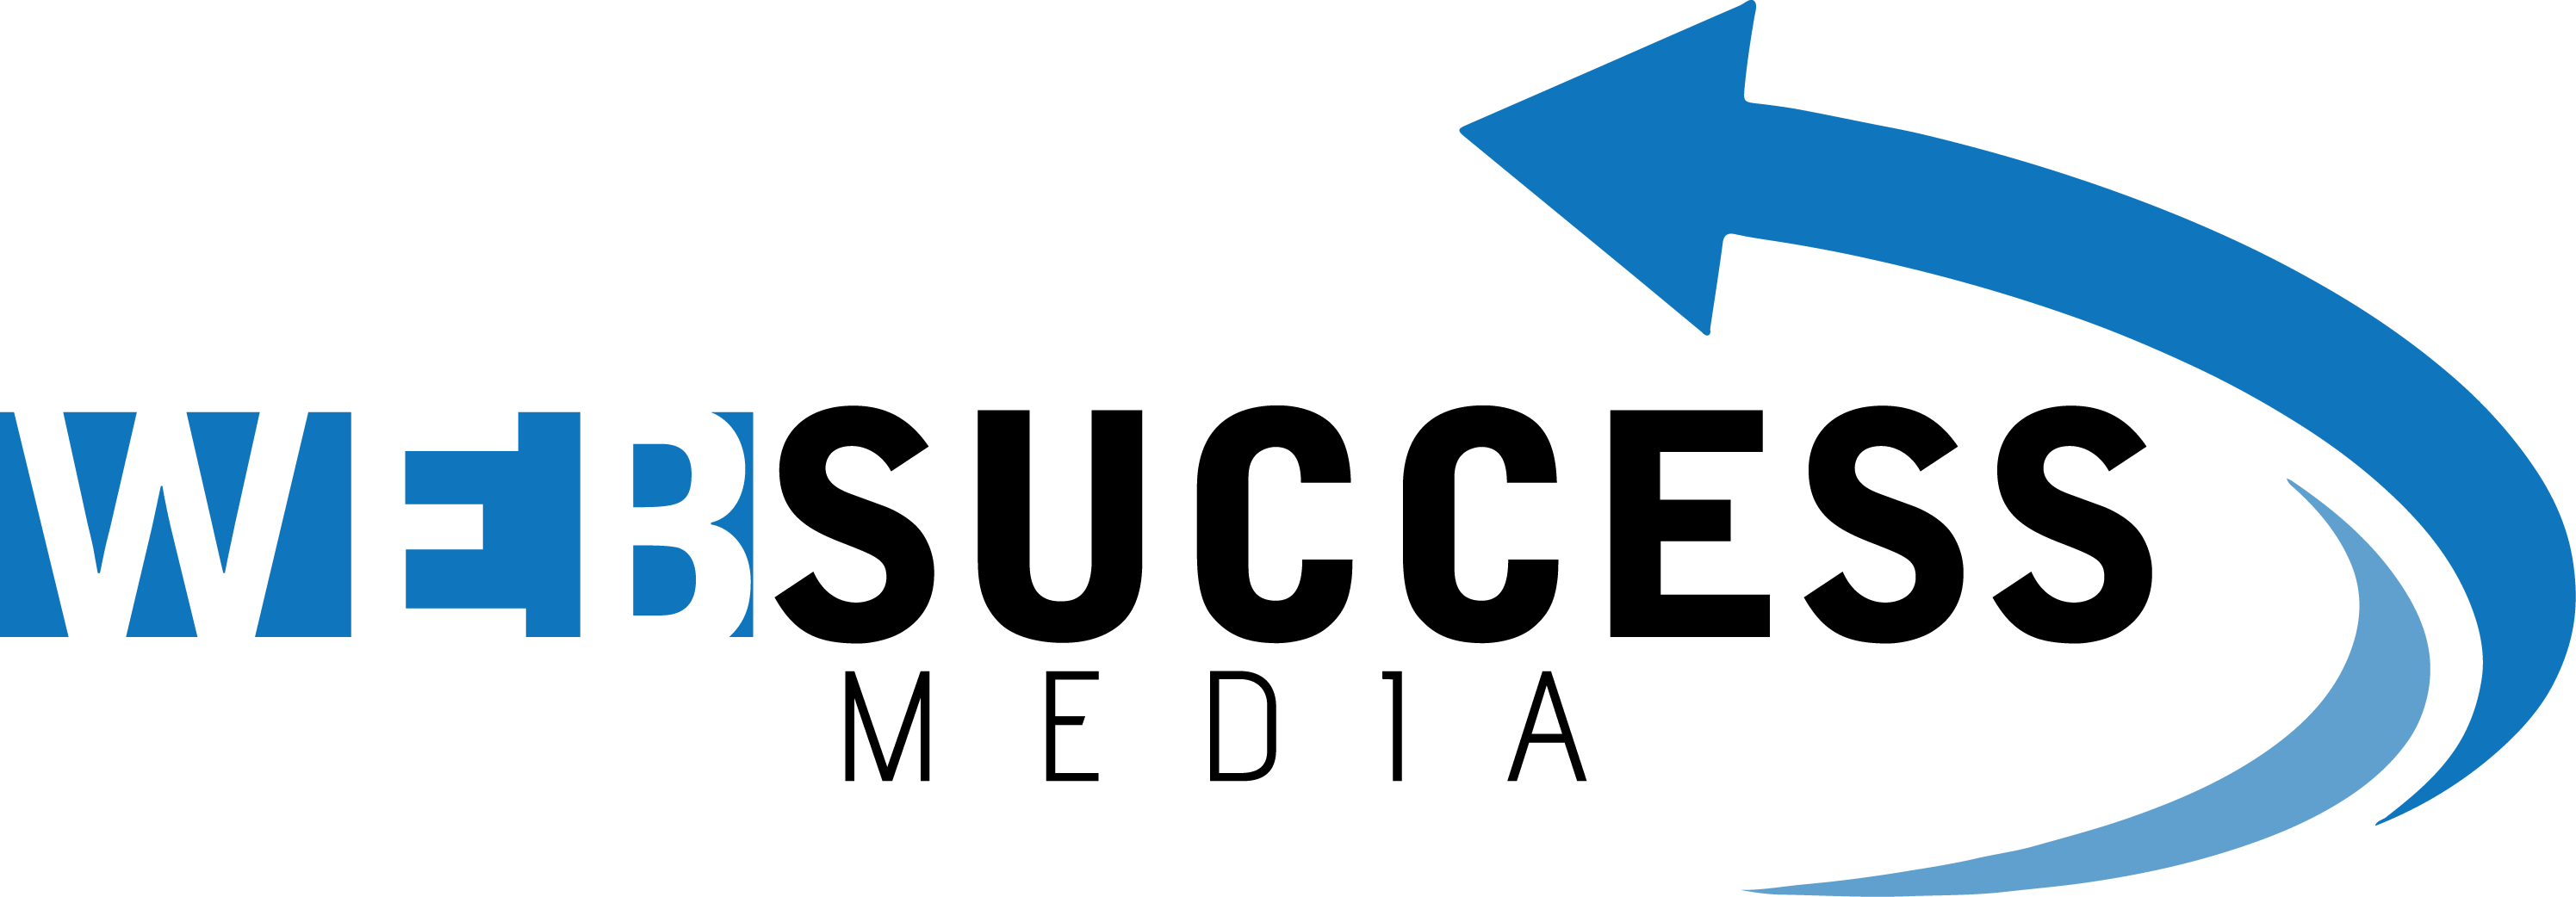 WEBSUCCESS MEDIA – Network of High Domain Authority Blogs & Websites